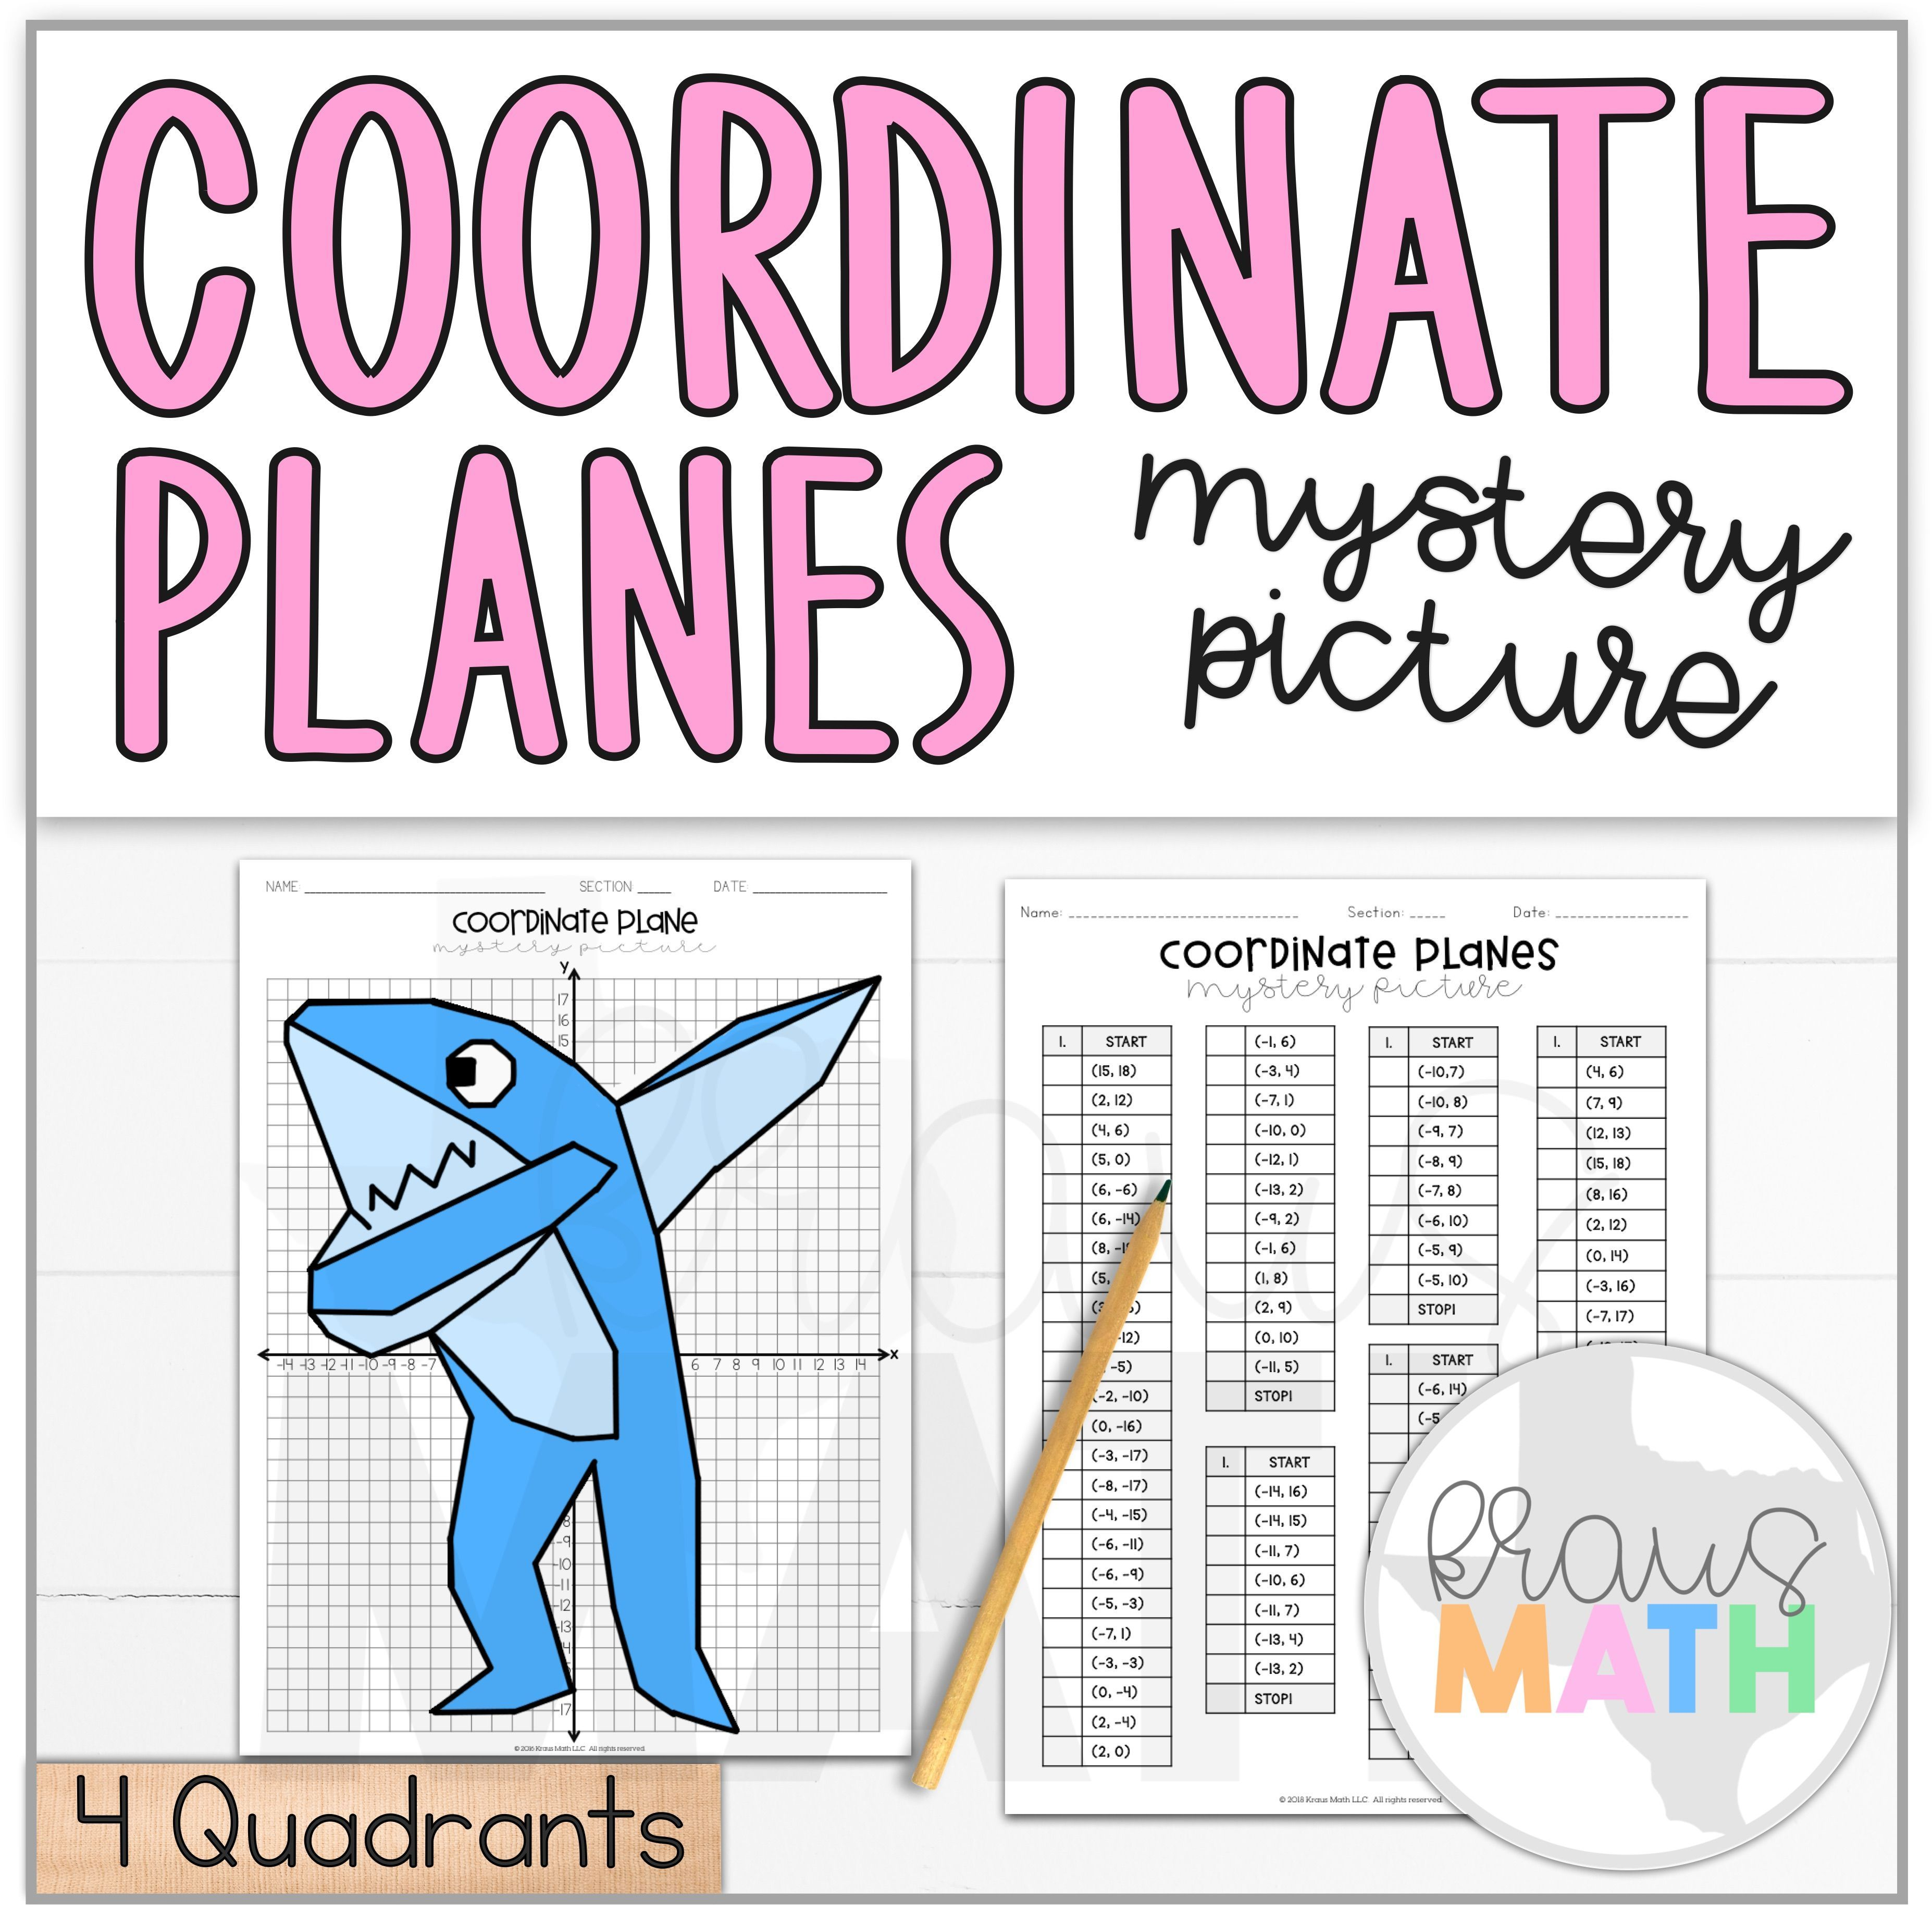 5th Grade Coordinate Grid Worksheets Printable Worksheets Are A Precious Lecture Room Tool Th In 2021 Coordinate Plane Activity Coordinate Plane Graphing Activities [ 3692 x 3708 Pixel ]